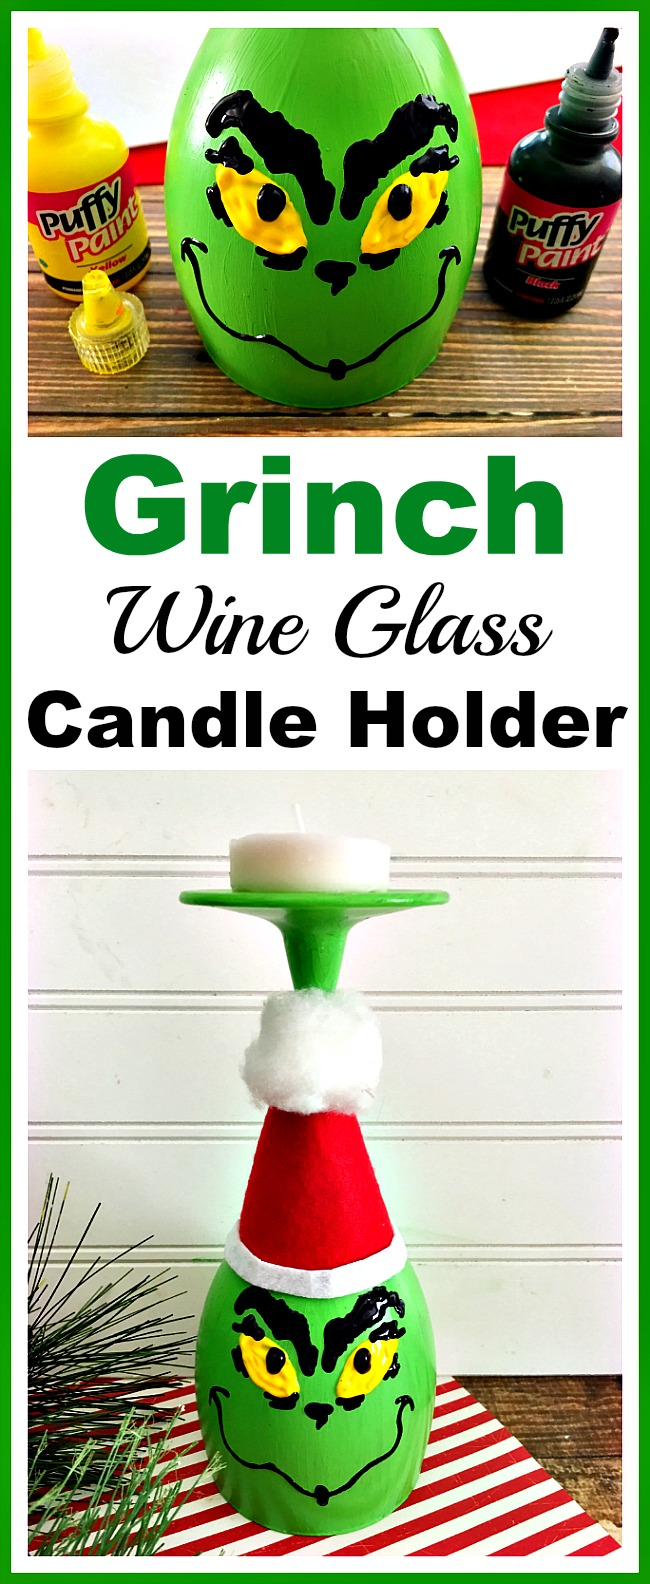 This DIY Grinch wine glass candle holder is a fun, easy and frugal holiday craft! It would also make a great holiday kids activity!